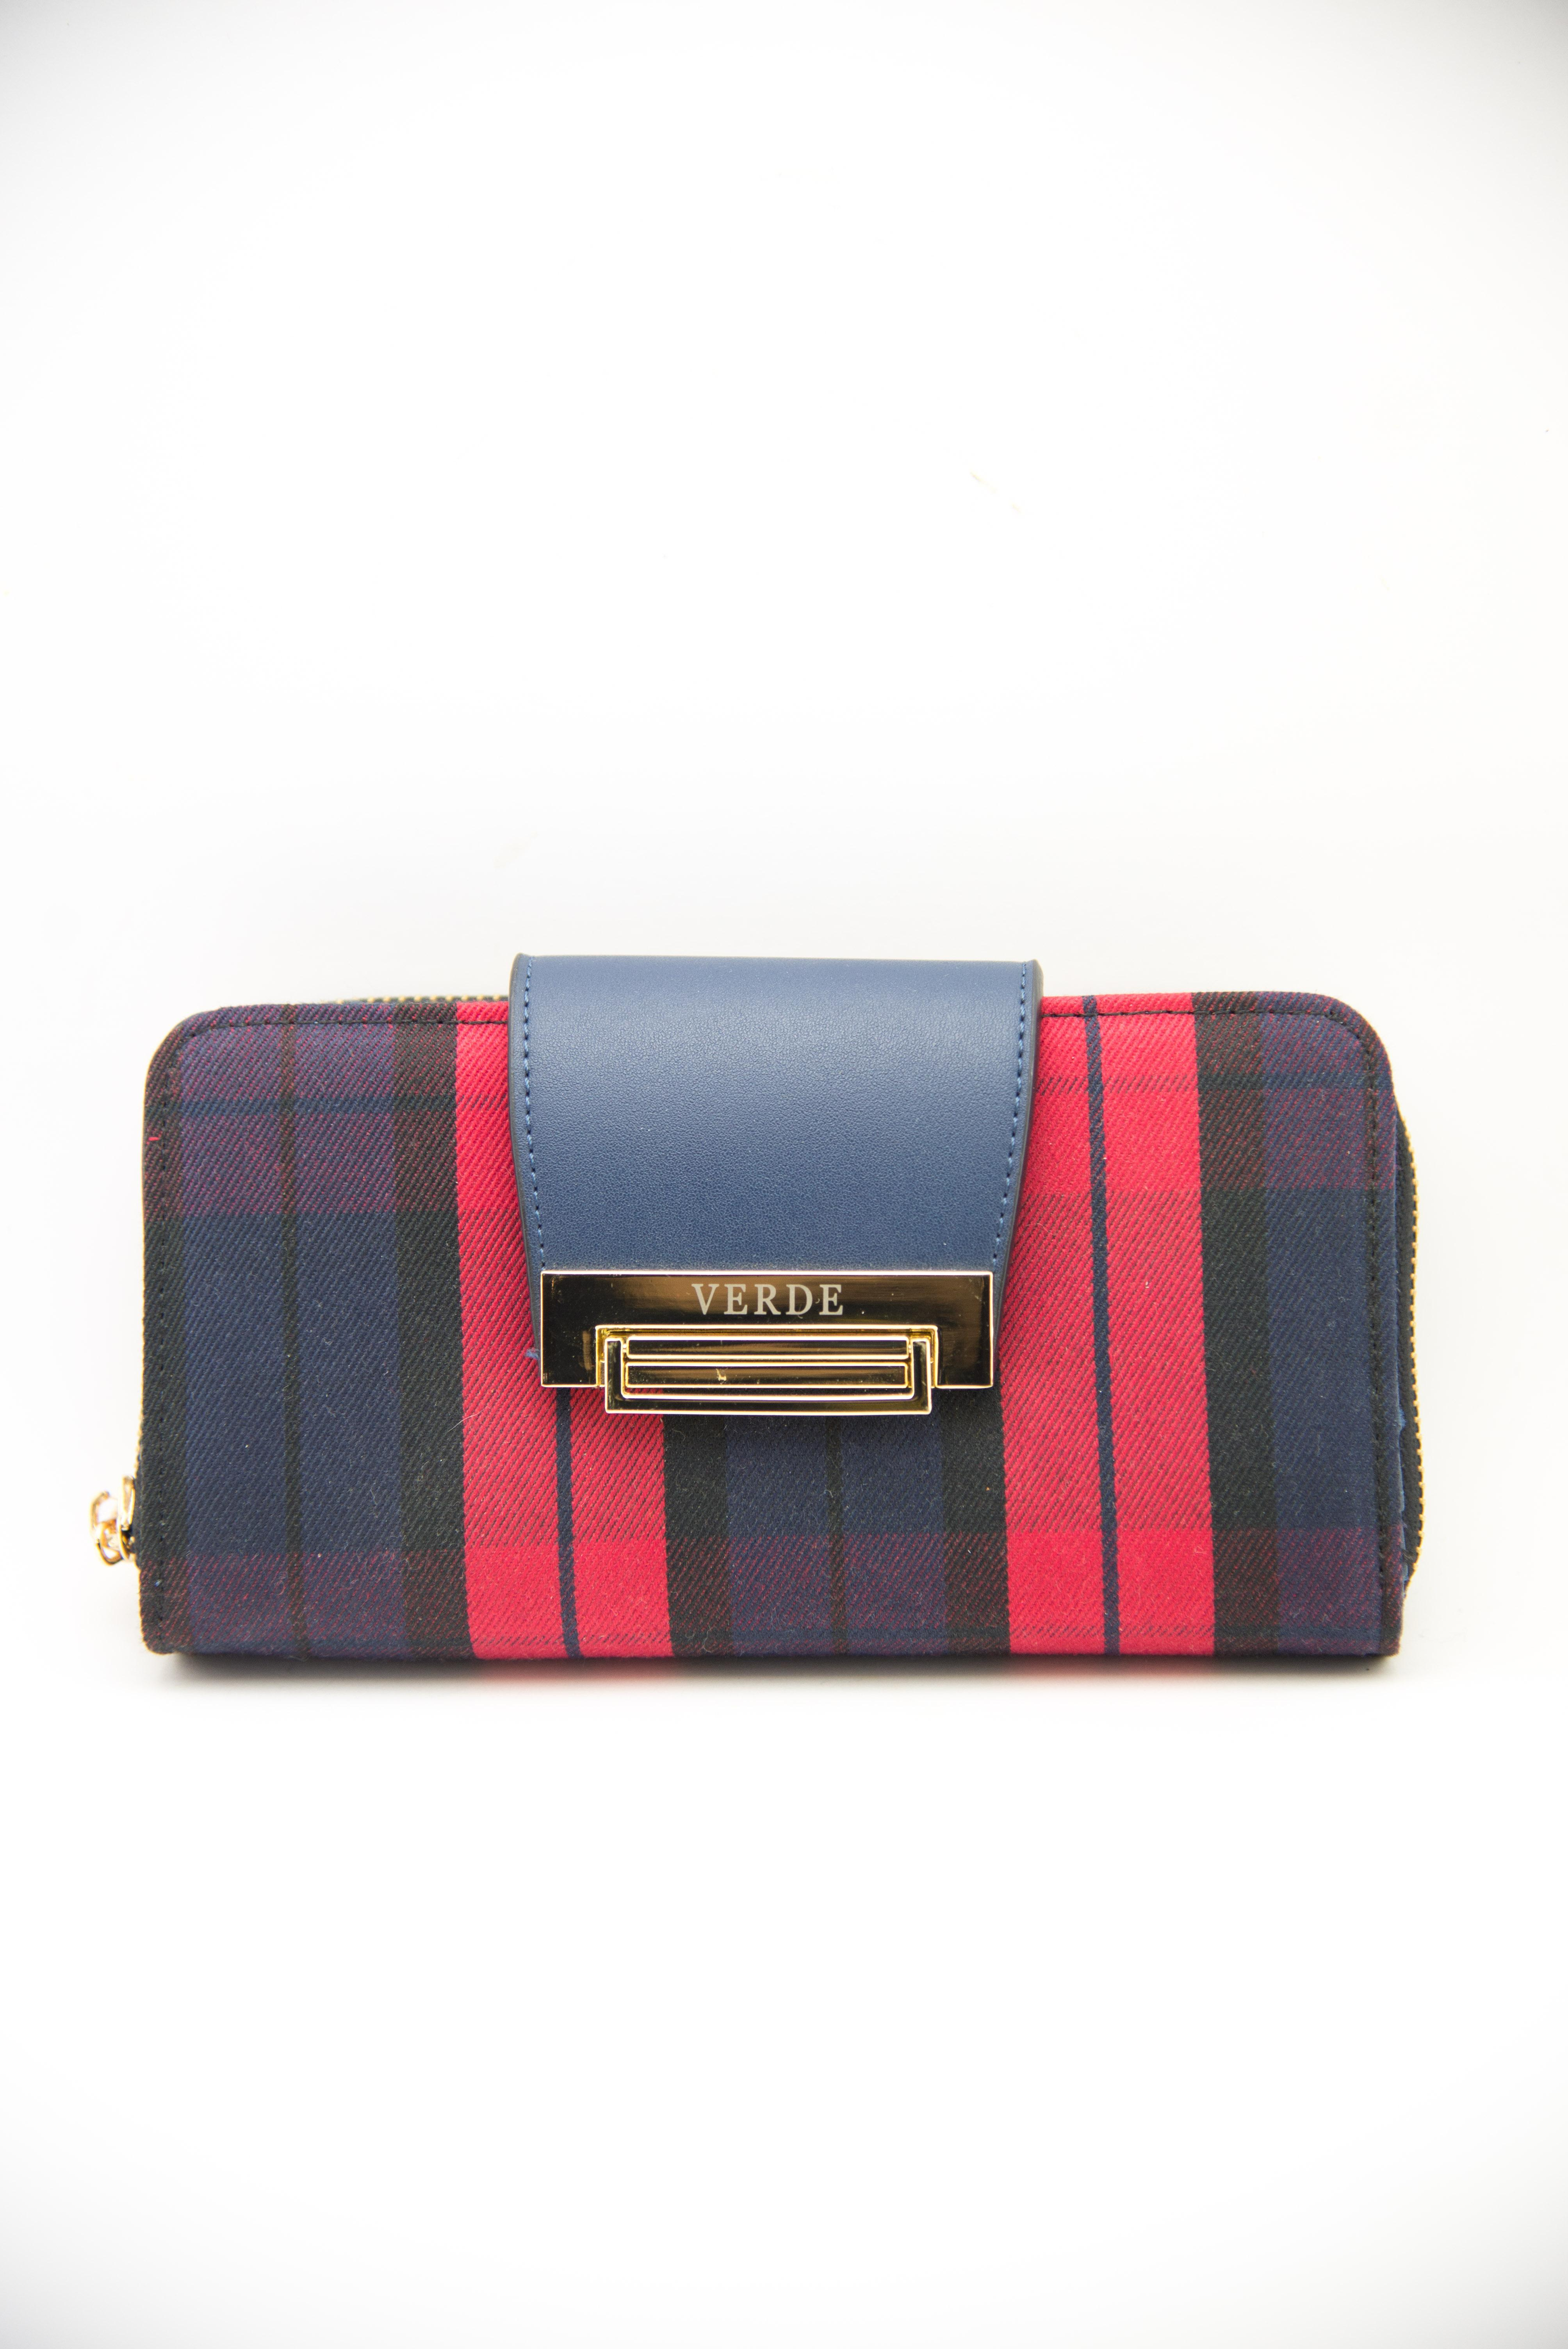 Plaid wallet red and blue | Online sale Women's wallets